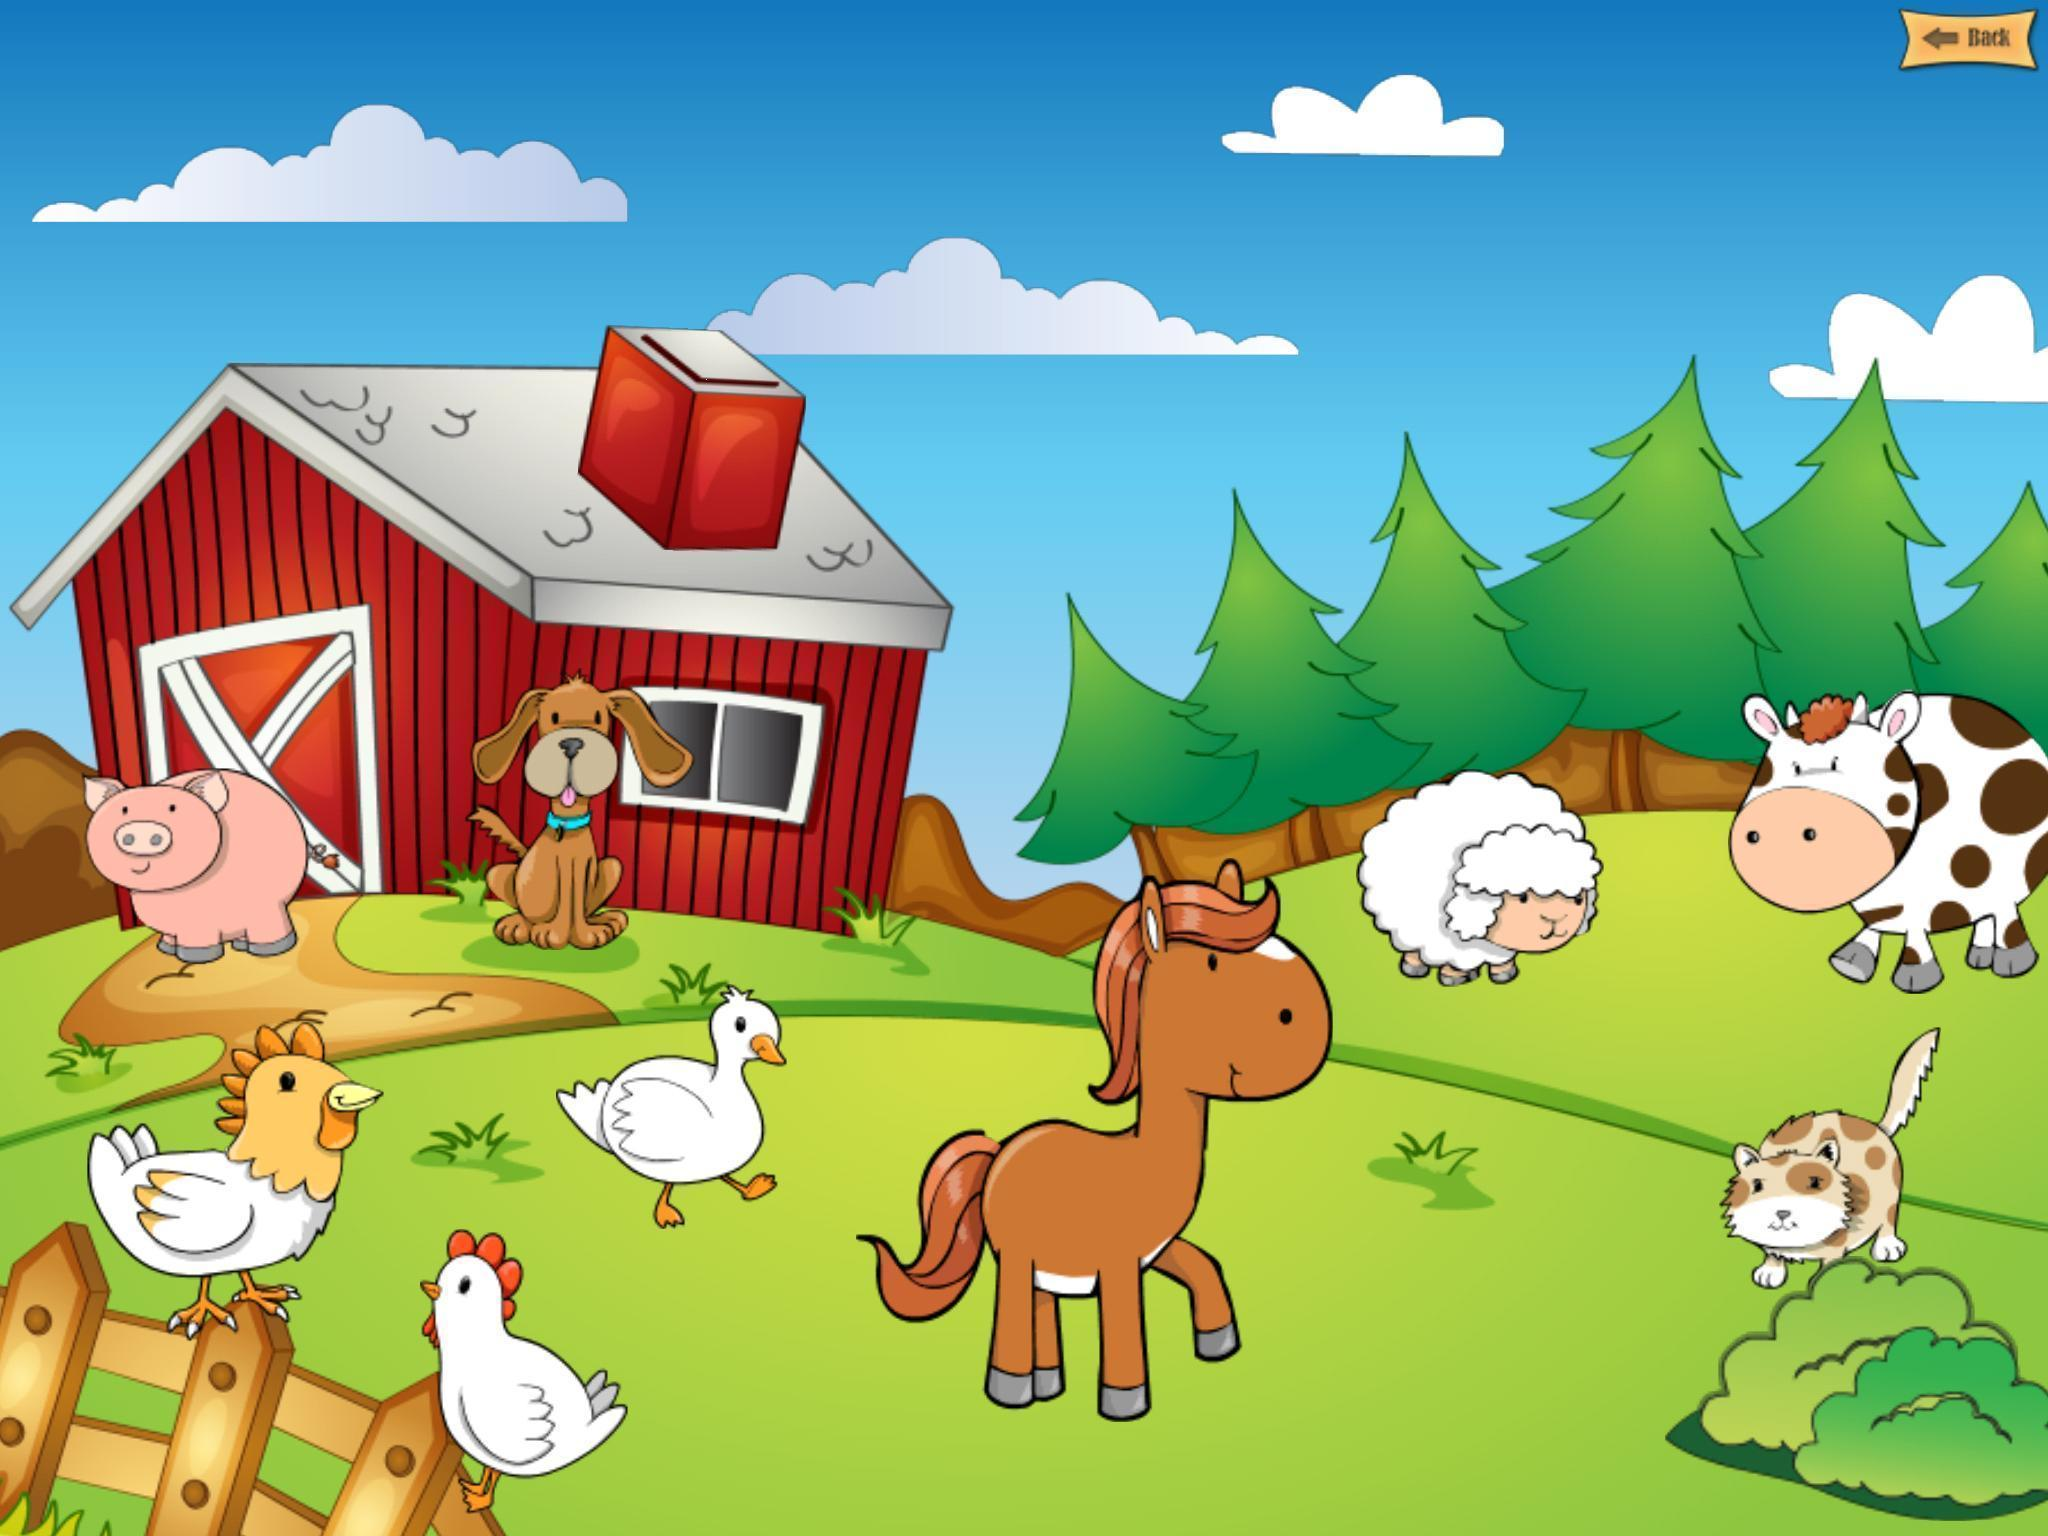 Farm Animals Wallpapers - Wallpaper Cave